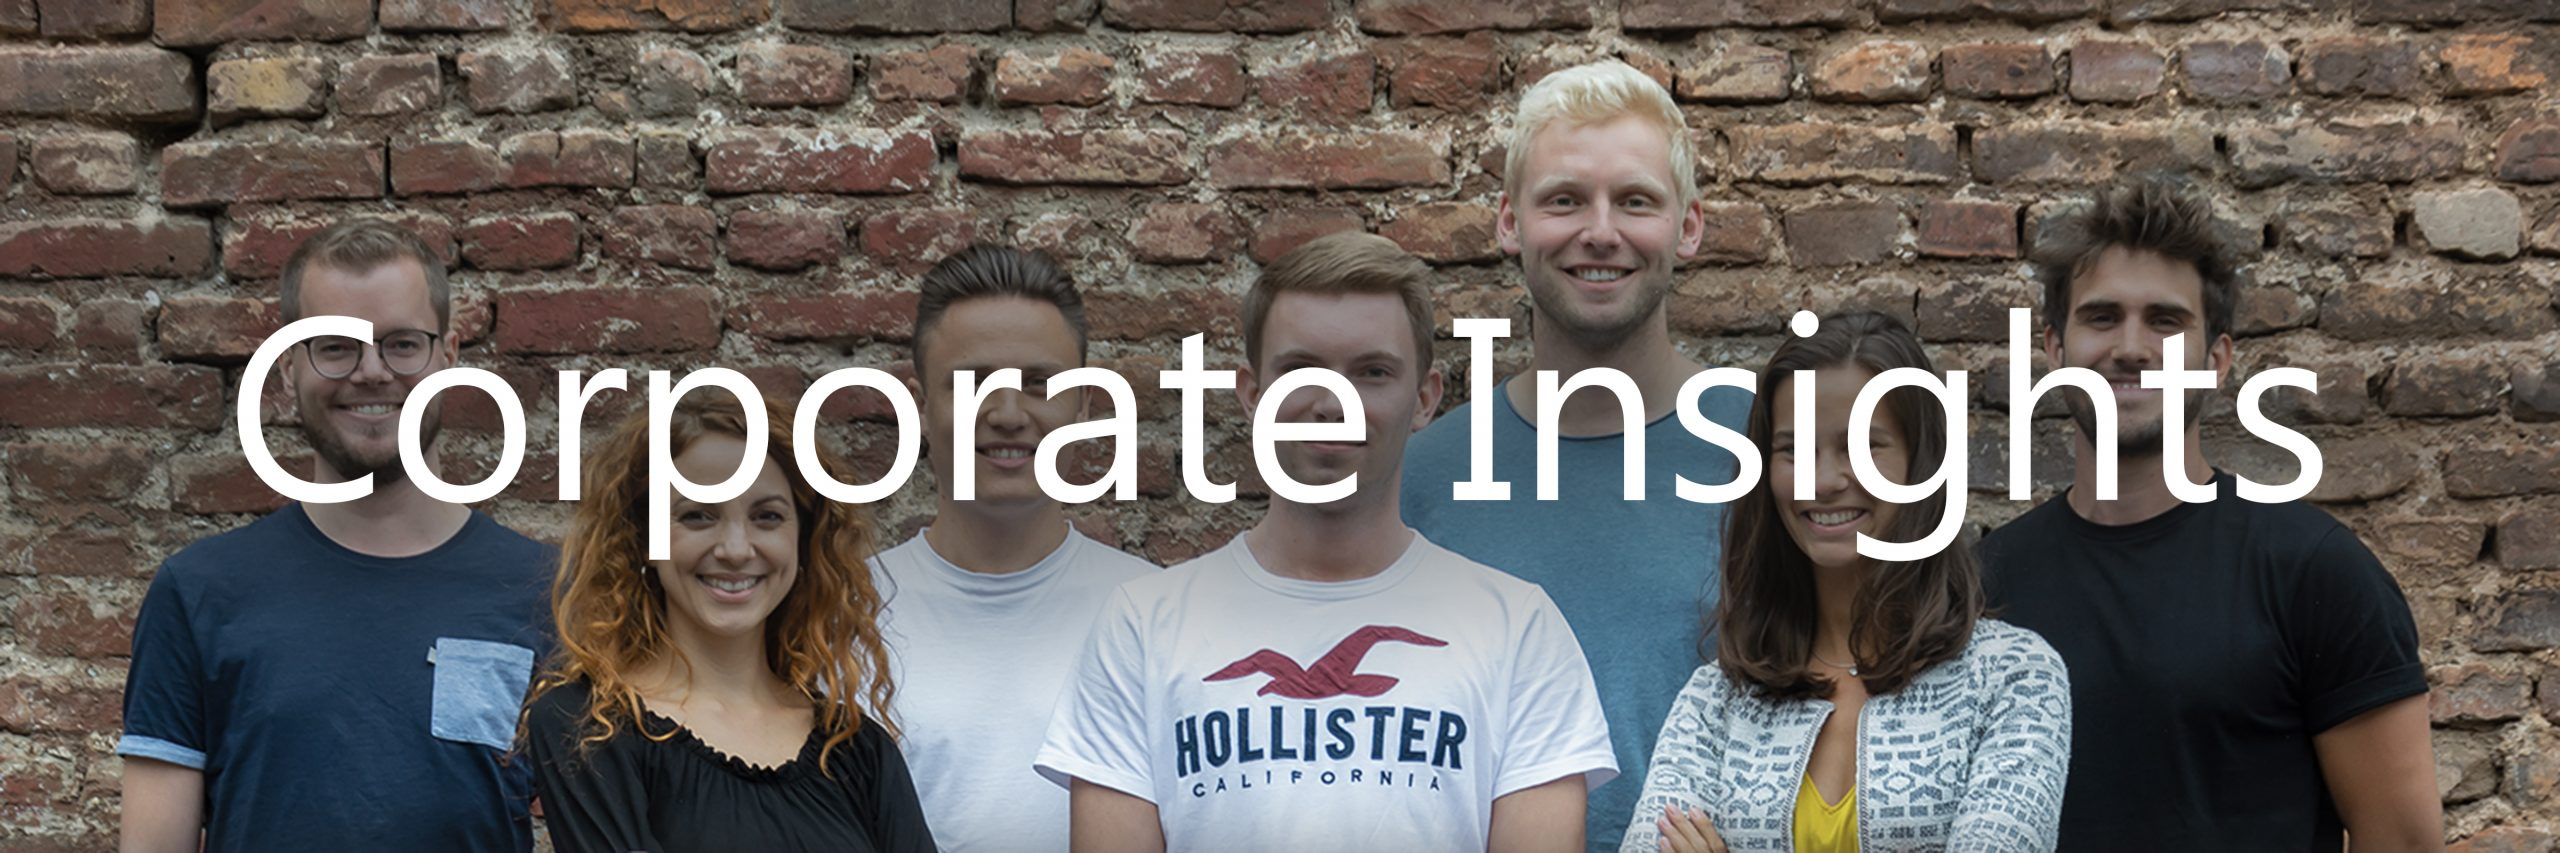 Corporate Insights und Team von goFLUX